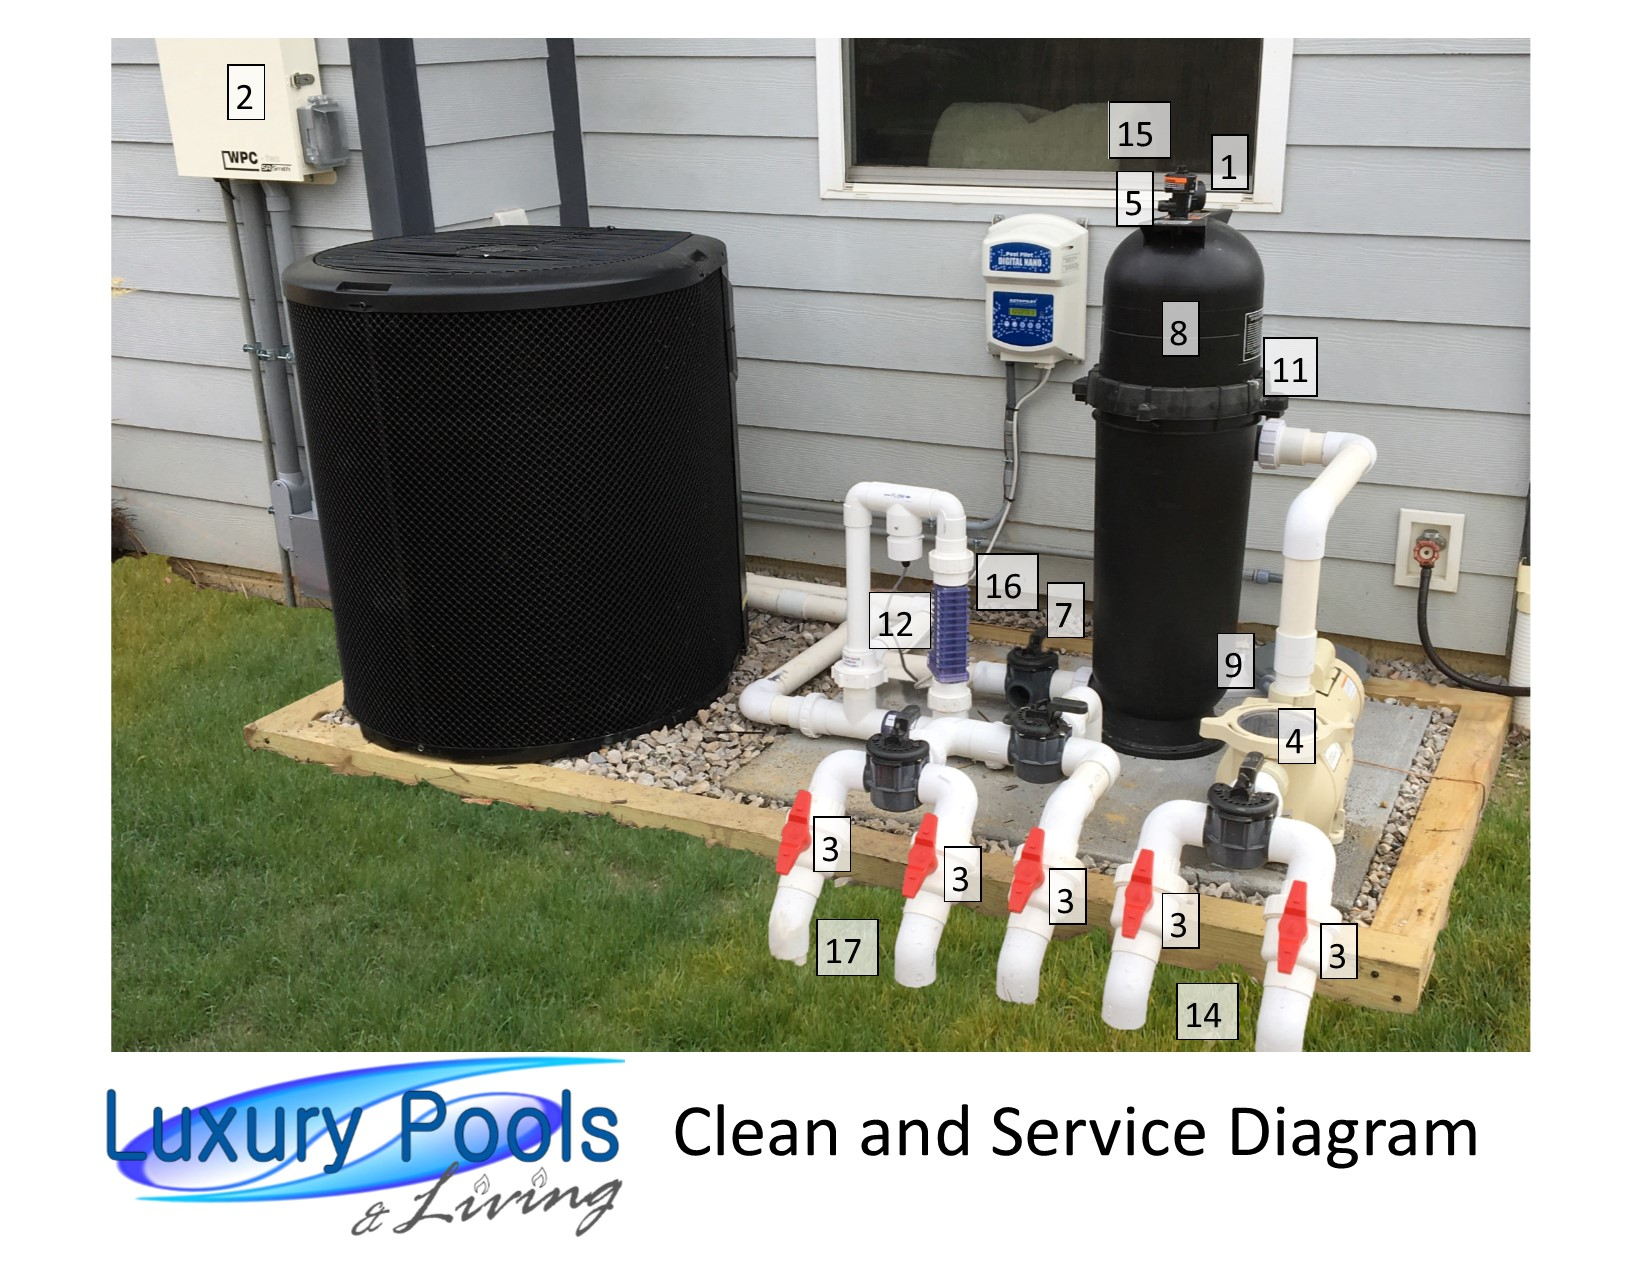 pool pump setup diagram mobile home electrical wiring servicing your equipment luxury pools and living